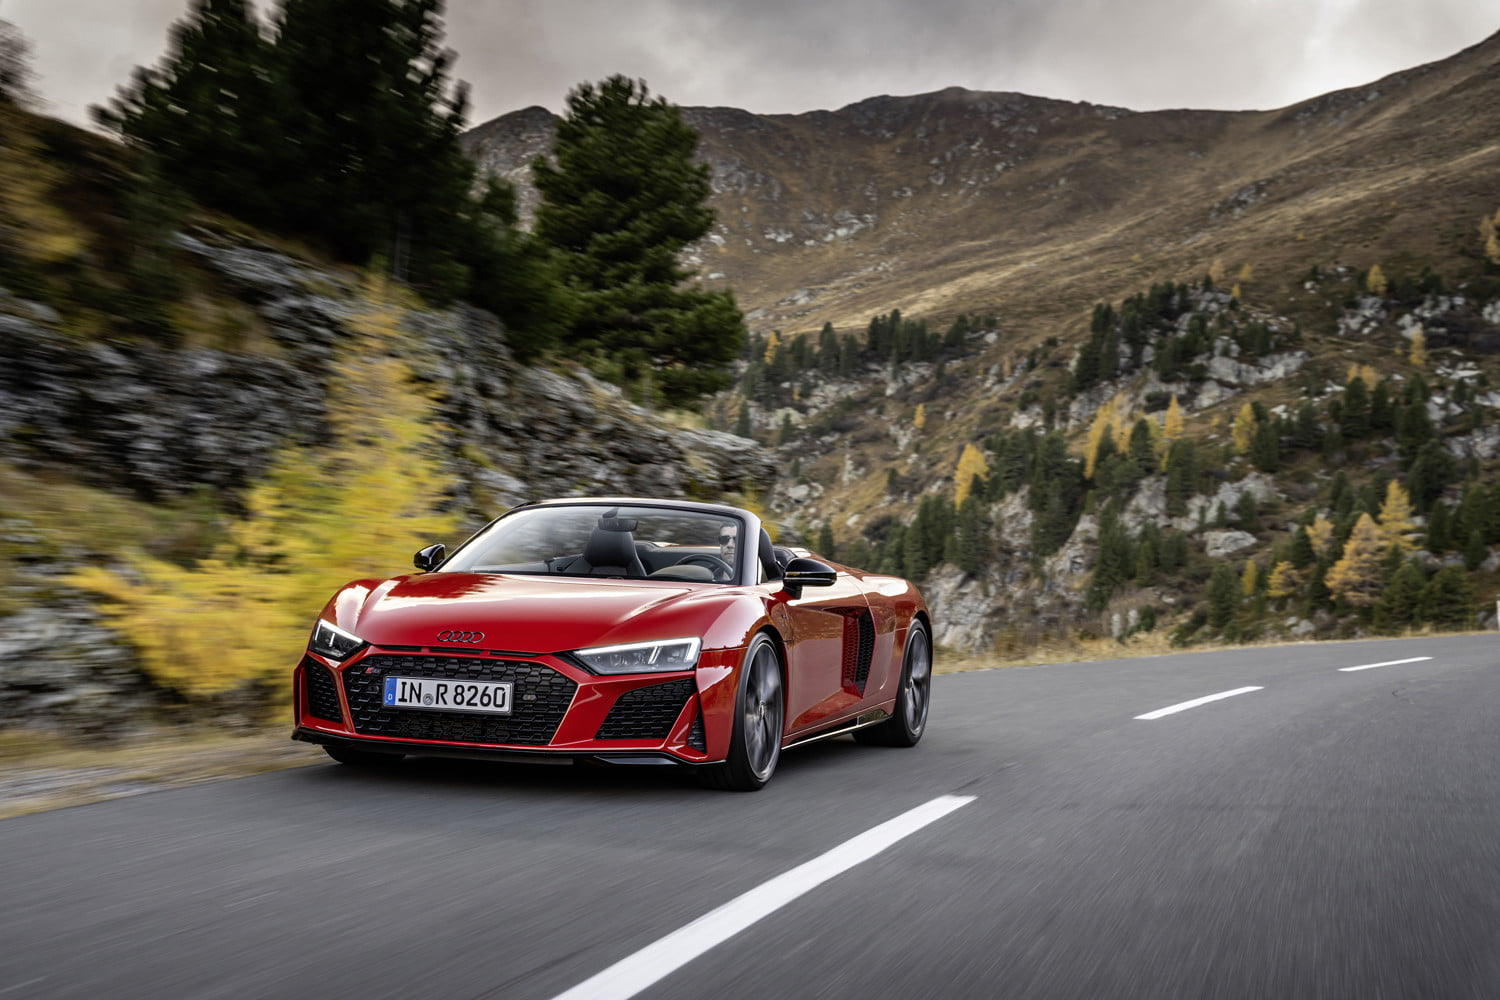 Audi's tail-wagging rear-wheel-drive R8 will play an encore in 2020